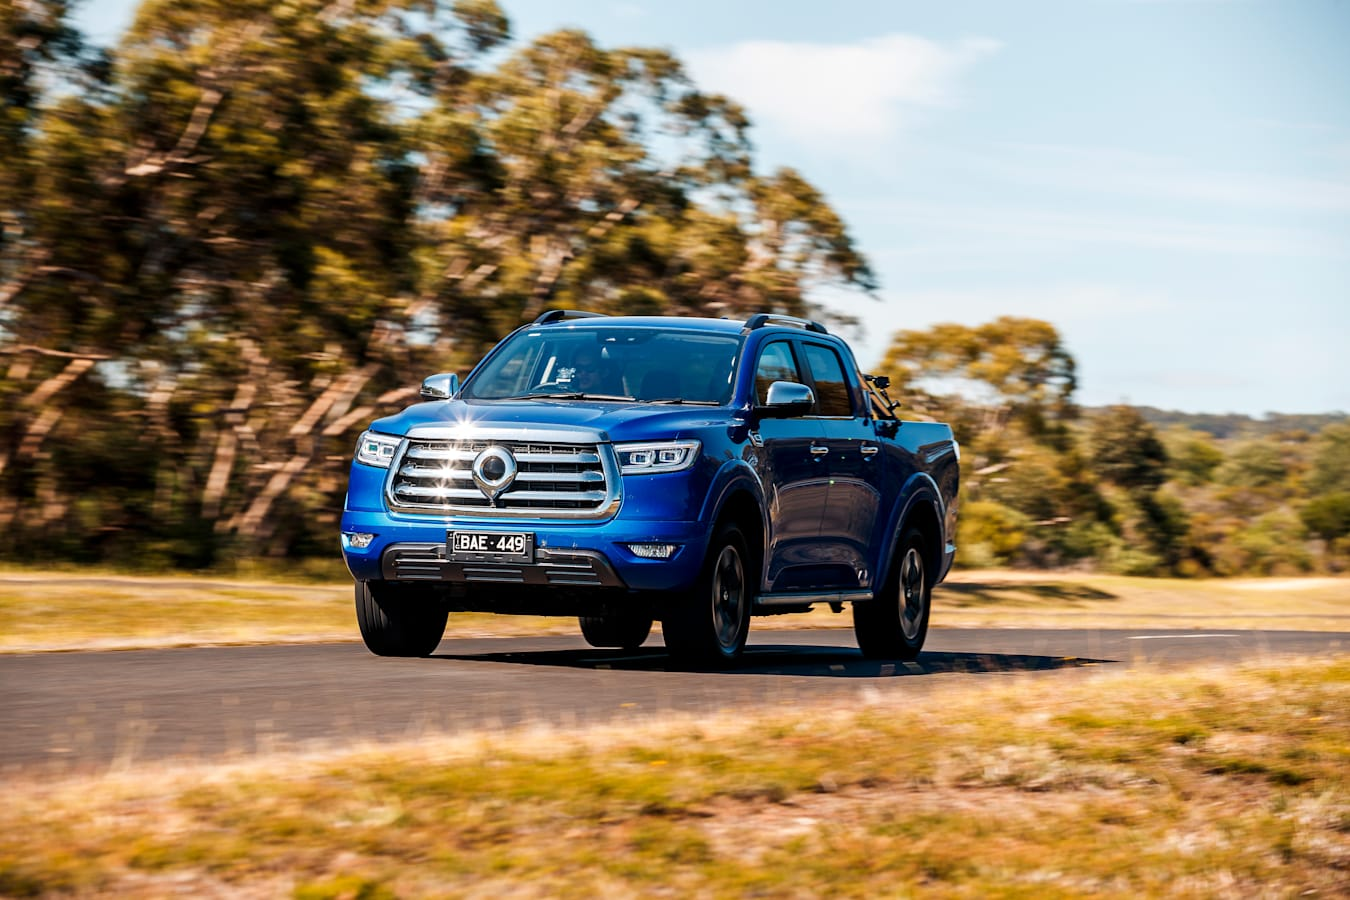 4 X 4 Australia Comparisons 2021 May 21 GWM Ute Cannon Performance Test Timing